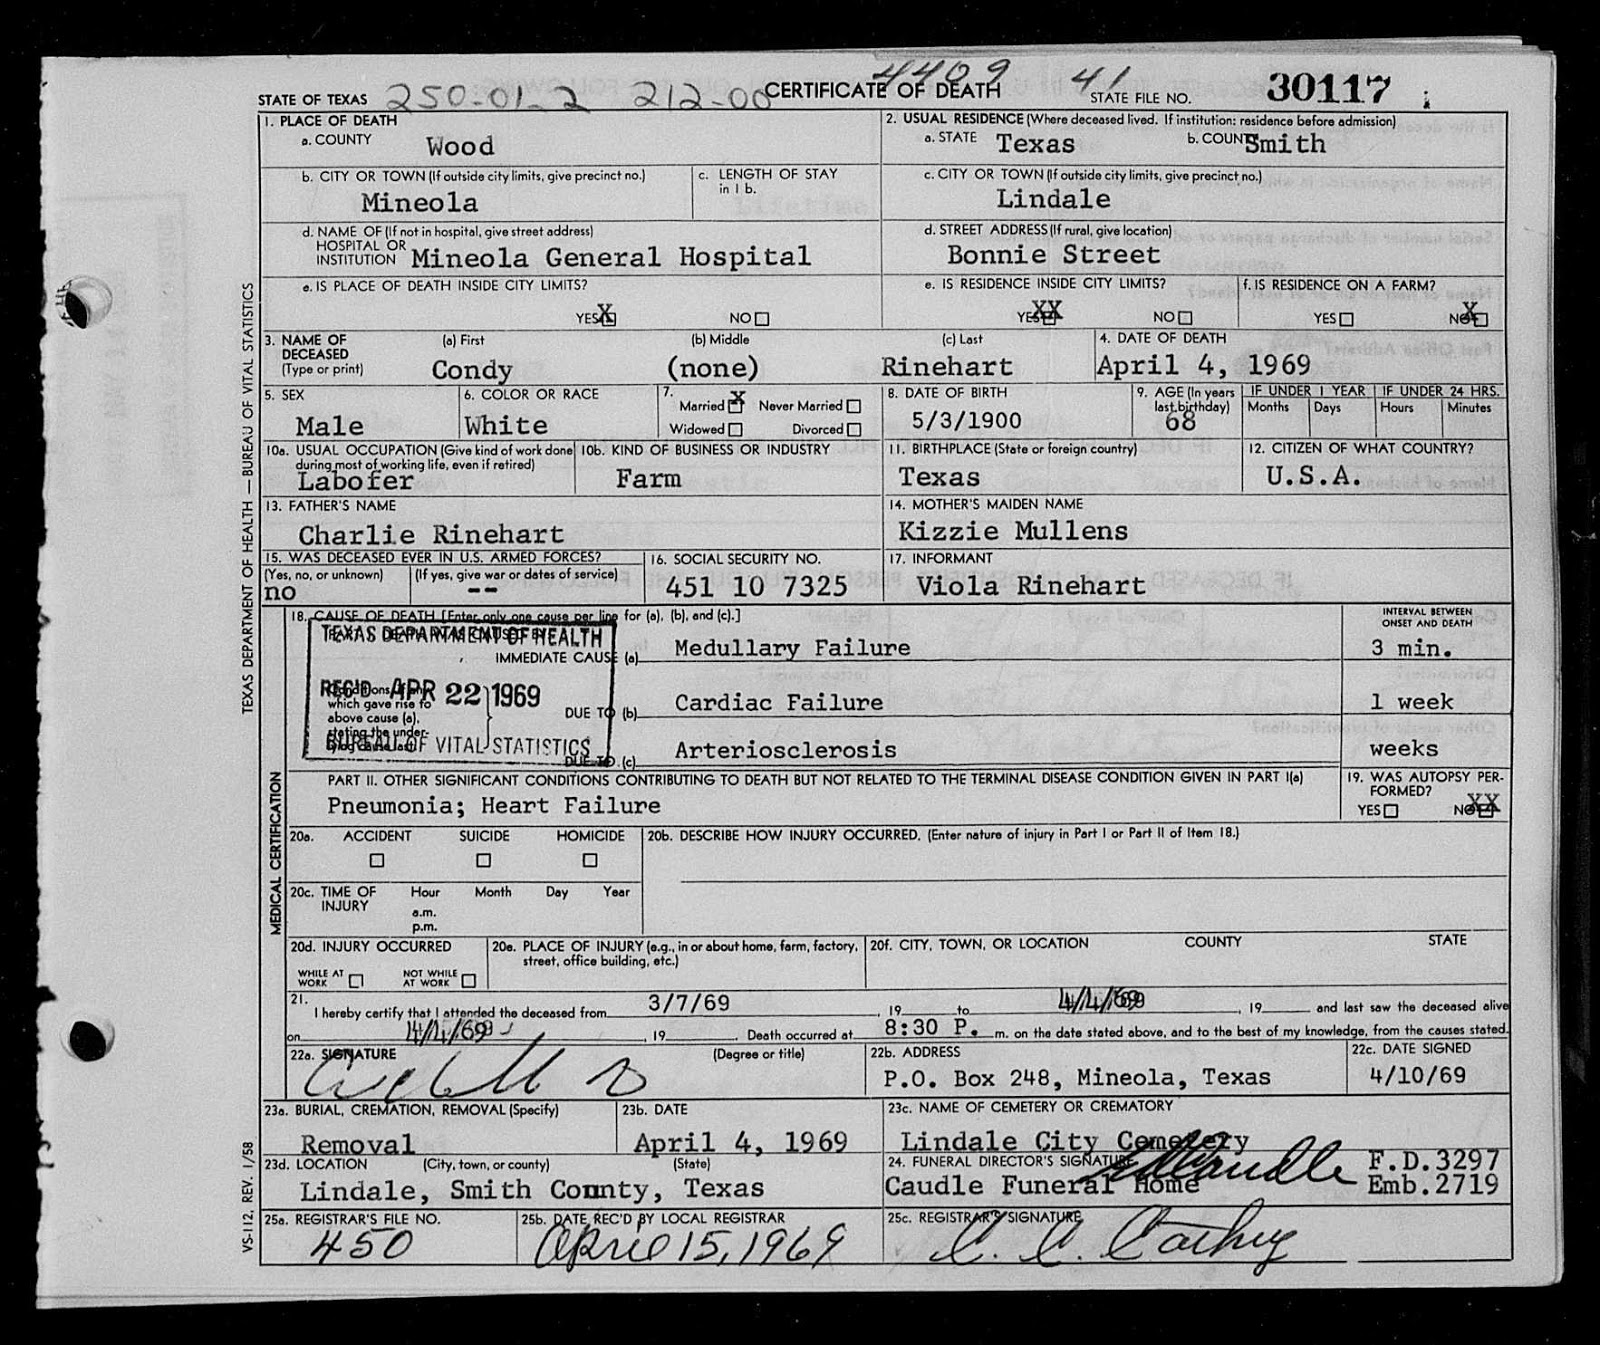 Wood County Recorder Office - Birth, Death, Marriage & Divorce Records